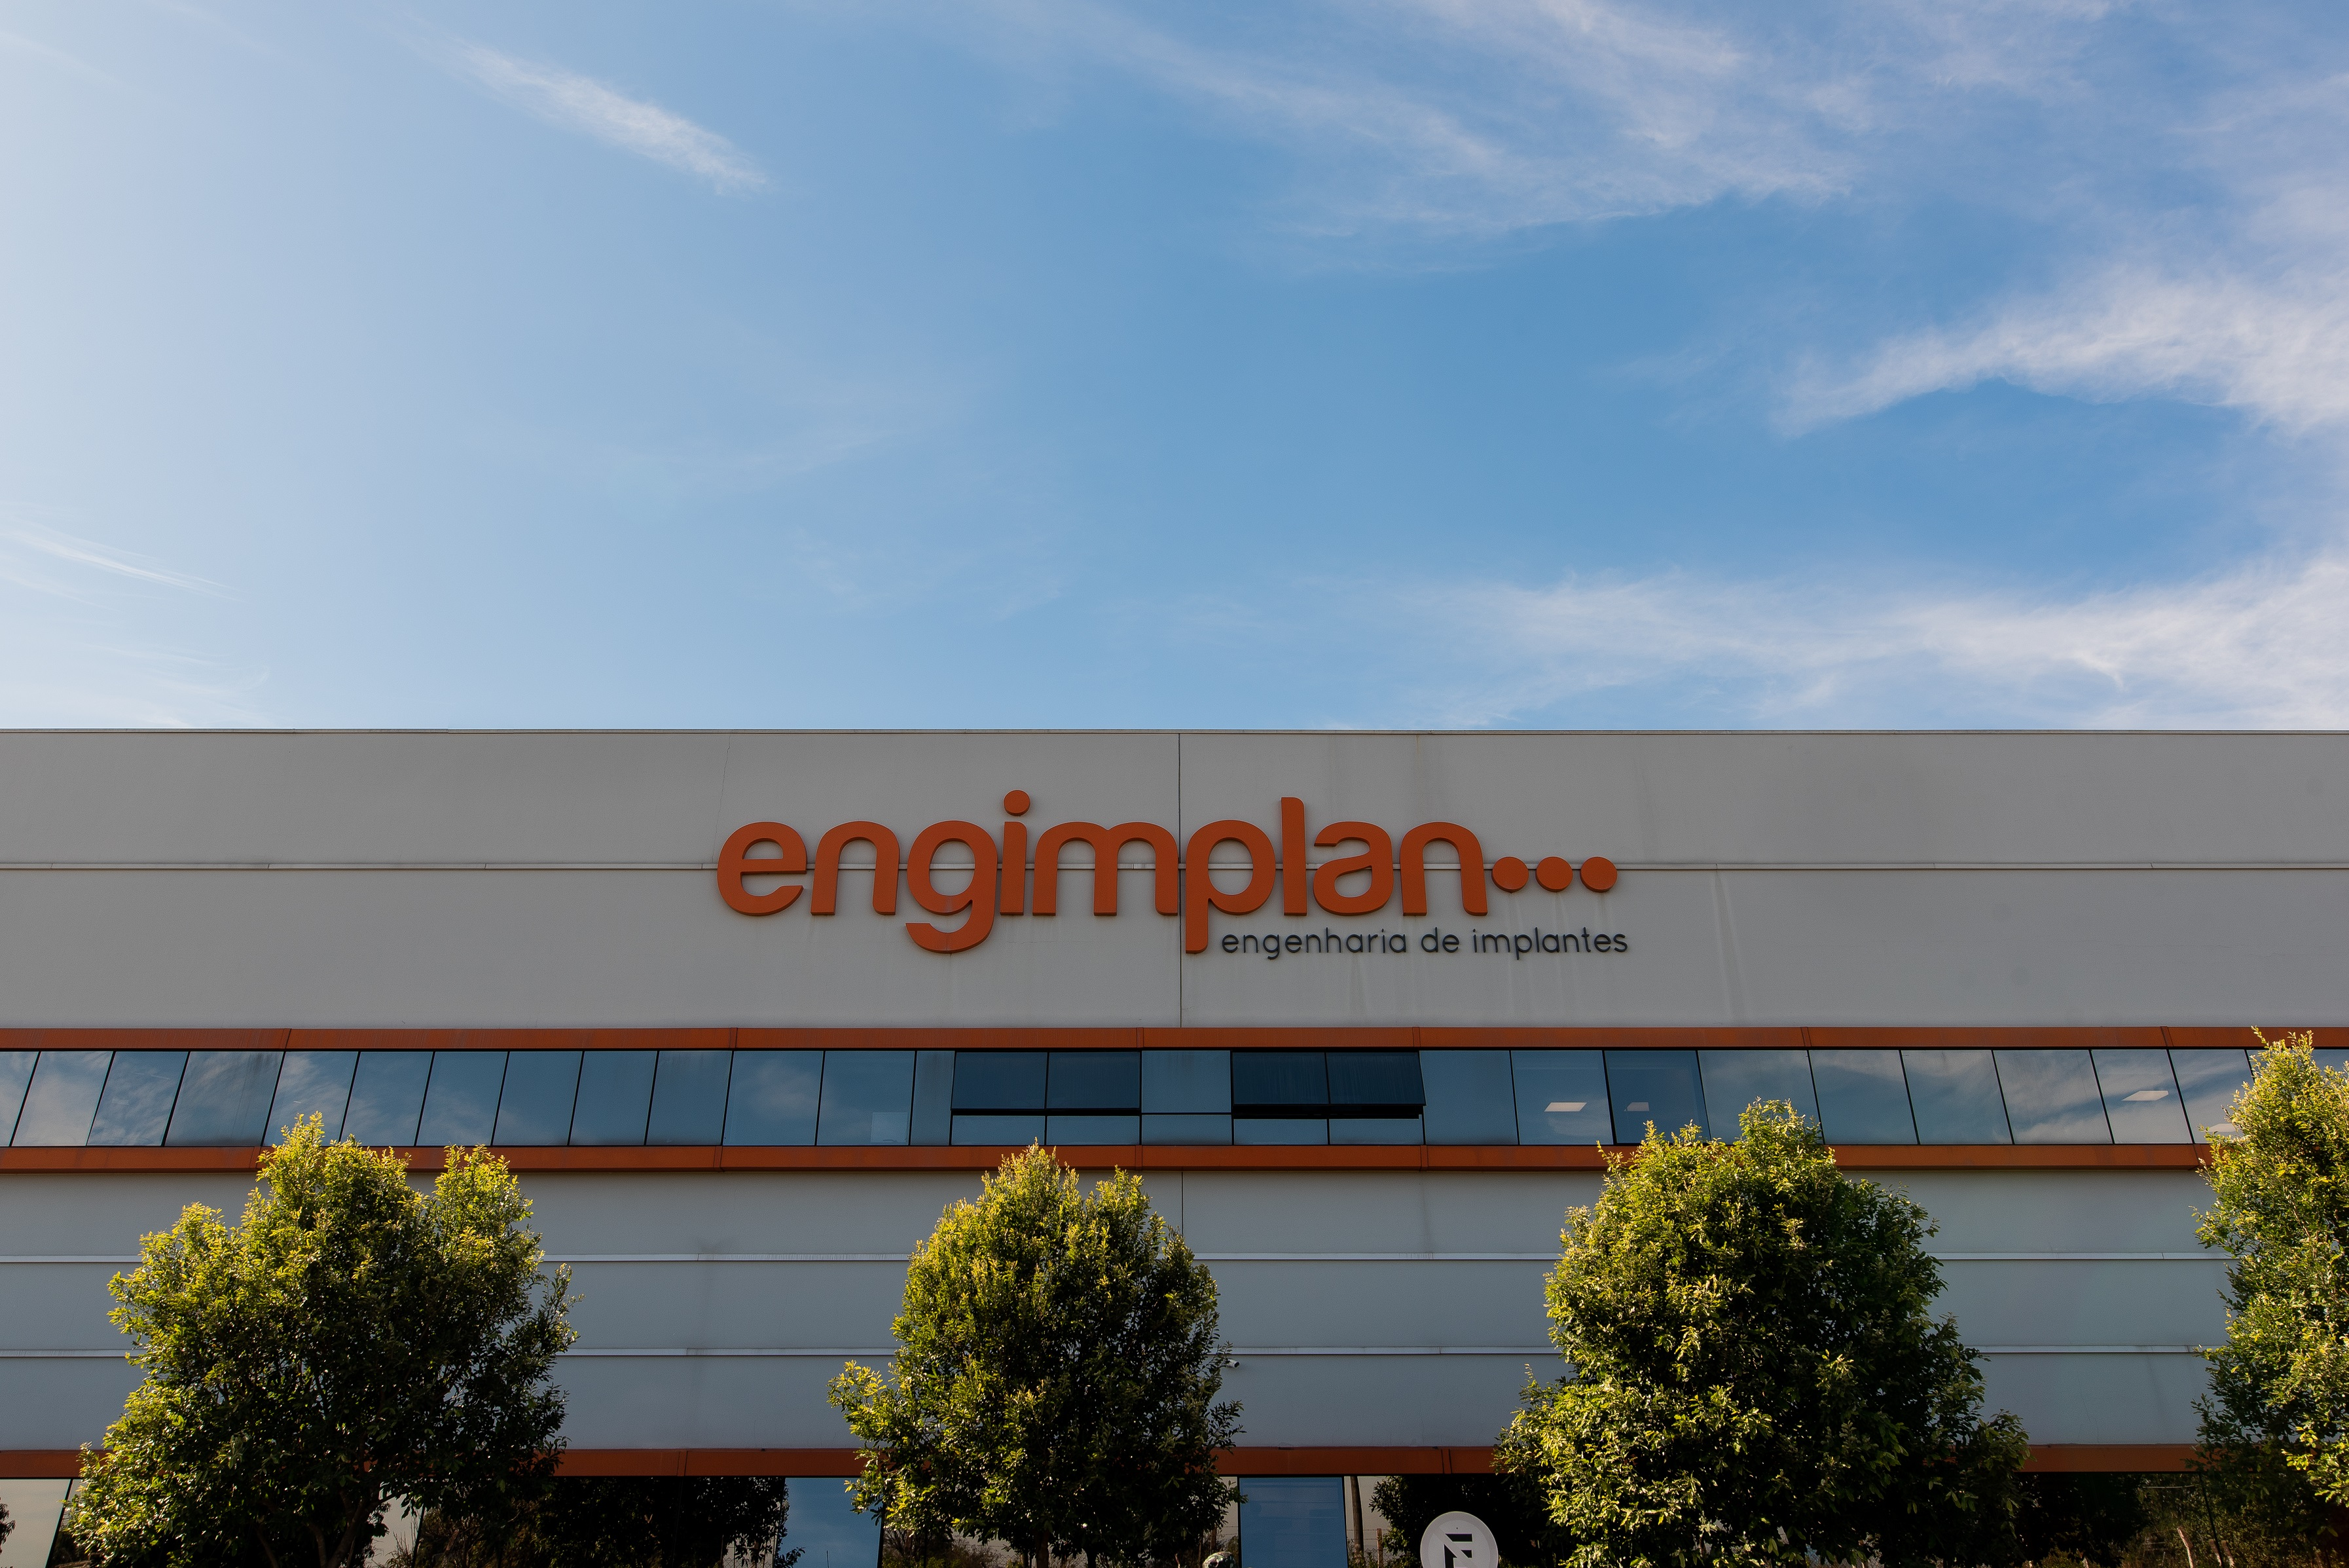 The Engimplan office. Photo via Materialise.